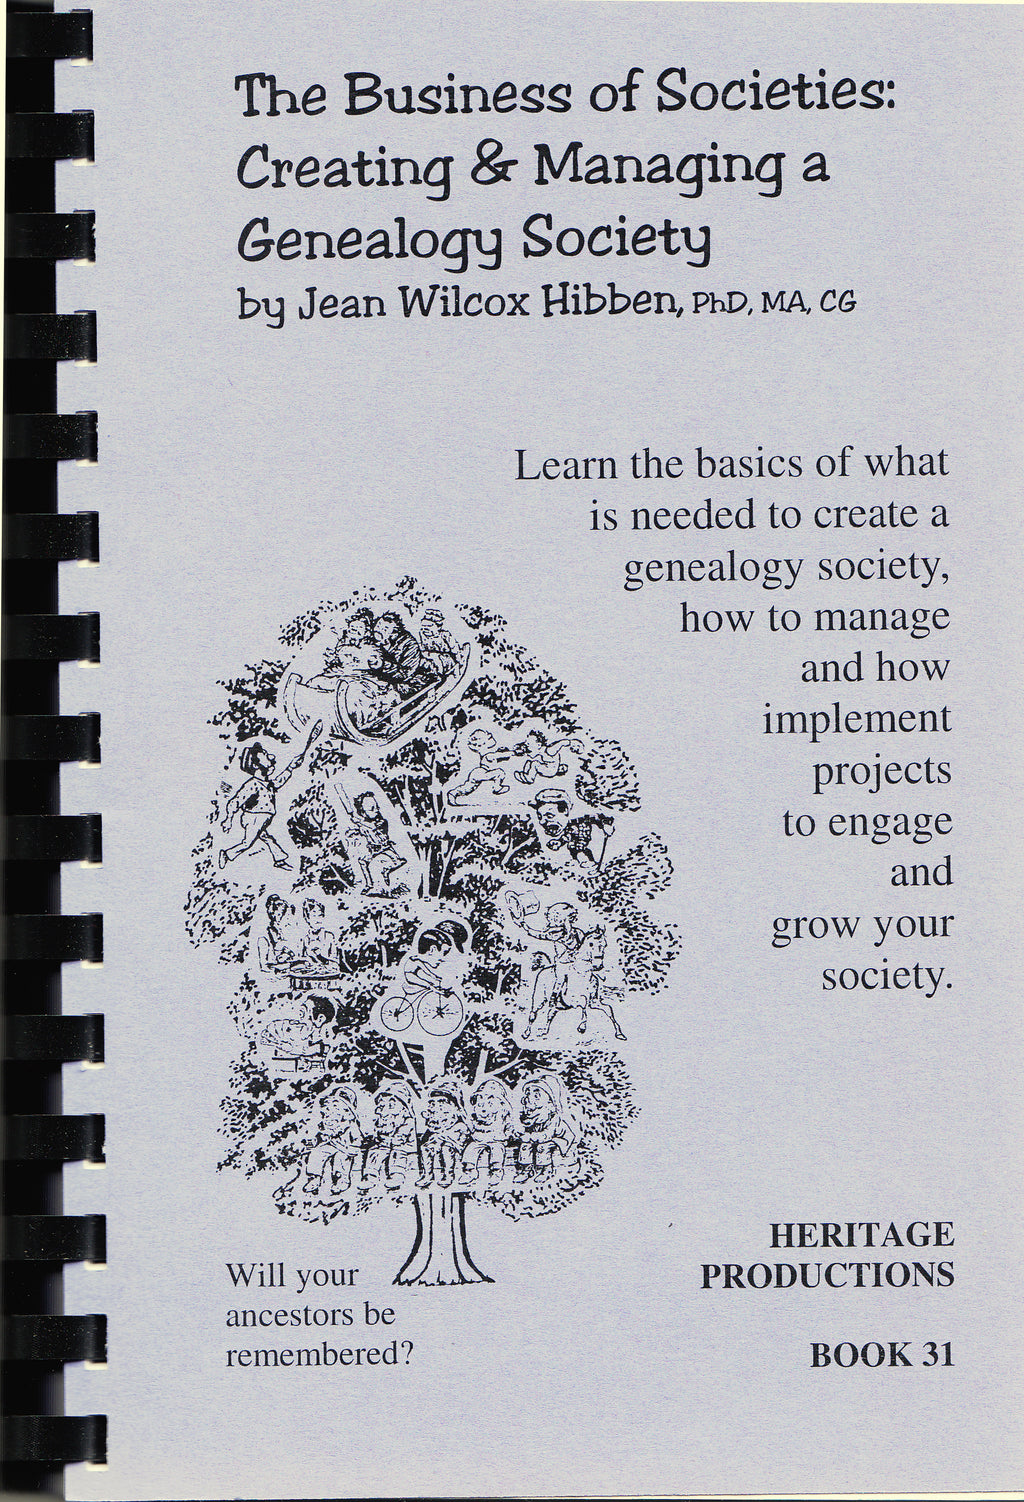 The Business of Societies: Creating & Managing a Genealogy Society